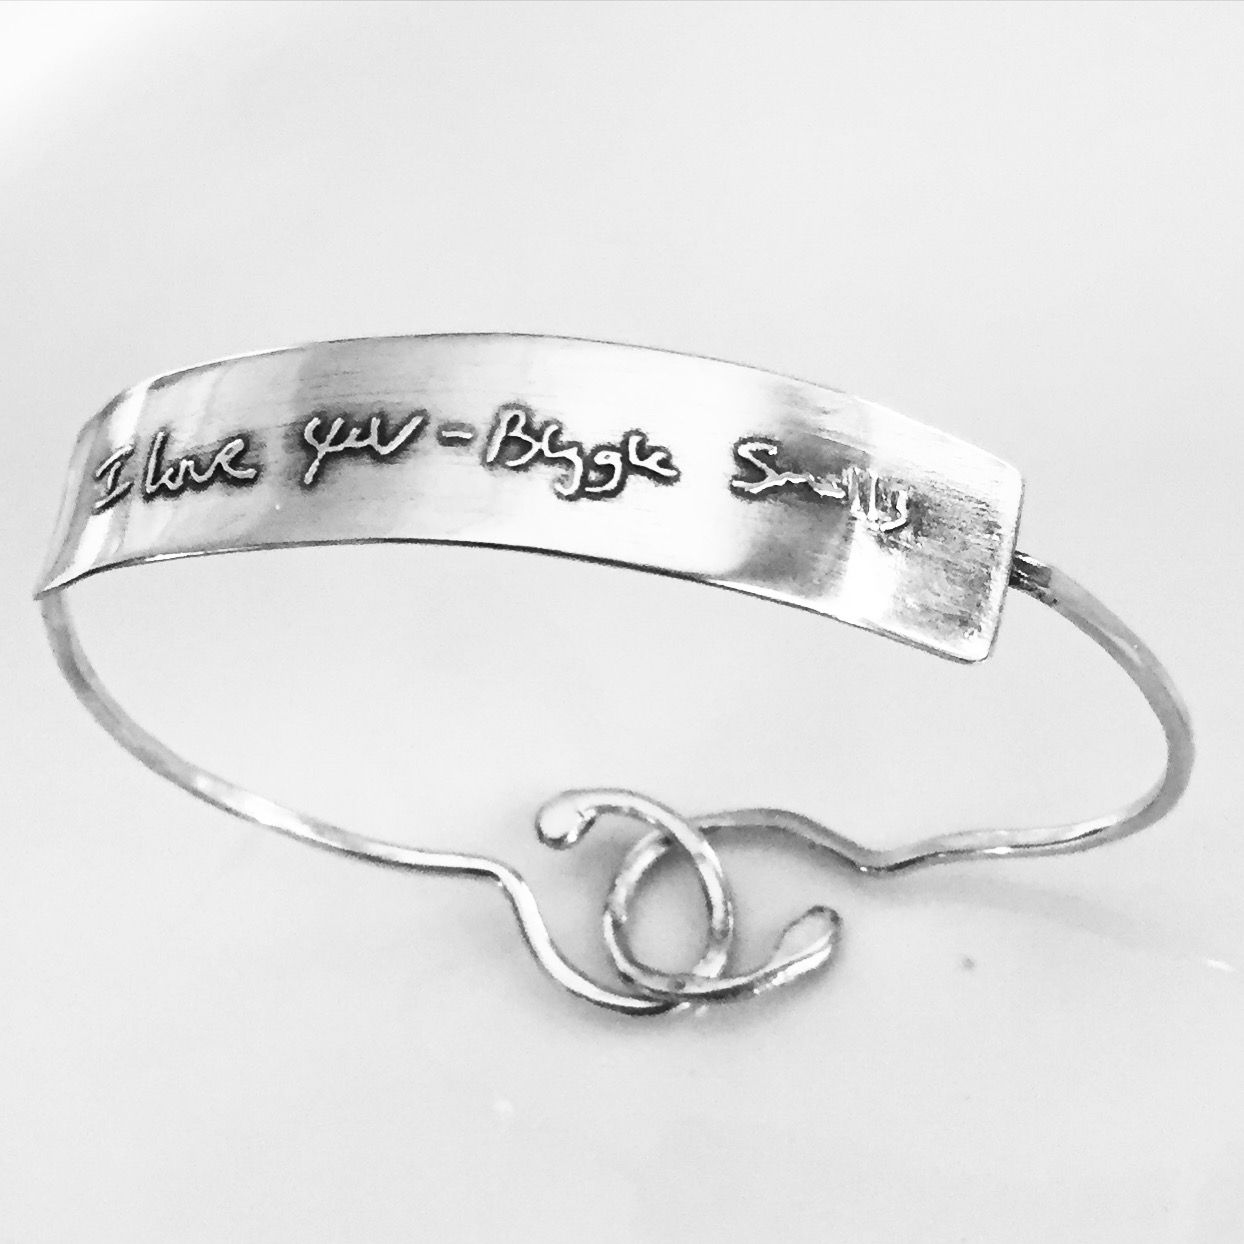 Memorial Jewelry Remember Your Loved Ones With An Inspiring Message Or Signature This Ed Handwritten Bangle Bracelet Clasps In The Back Tiny